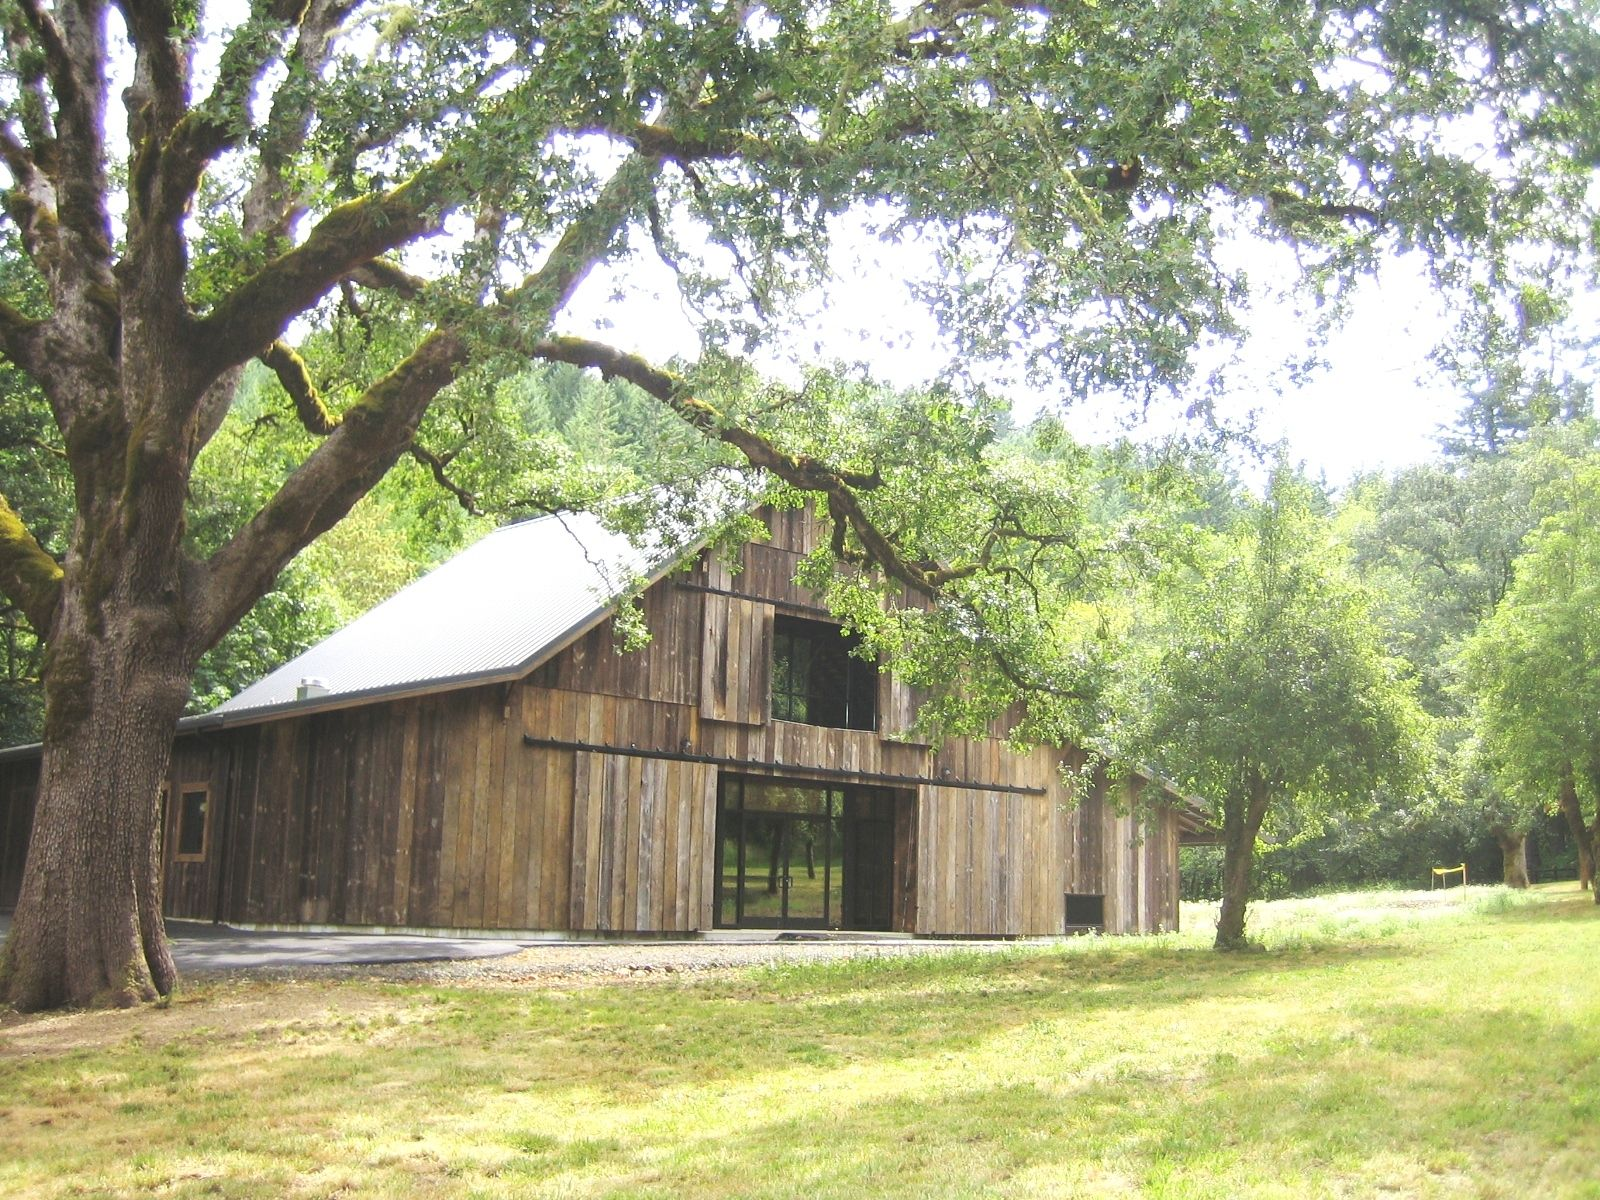 BEAZELL FOREST EDUCATION CENTER in corvallis Forest